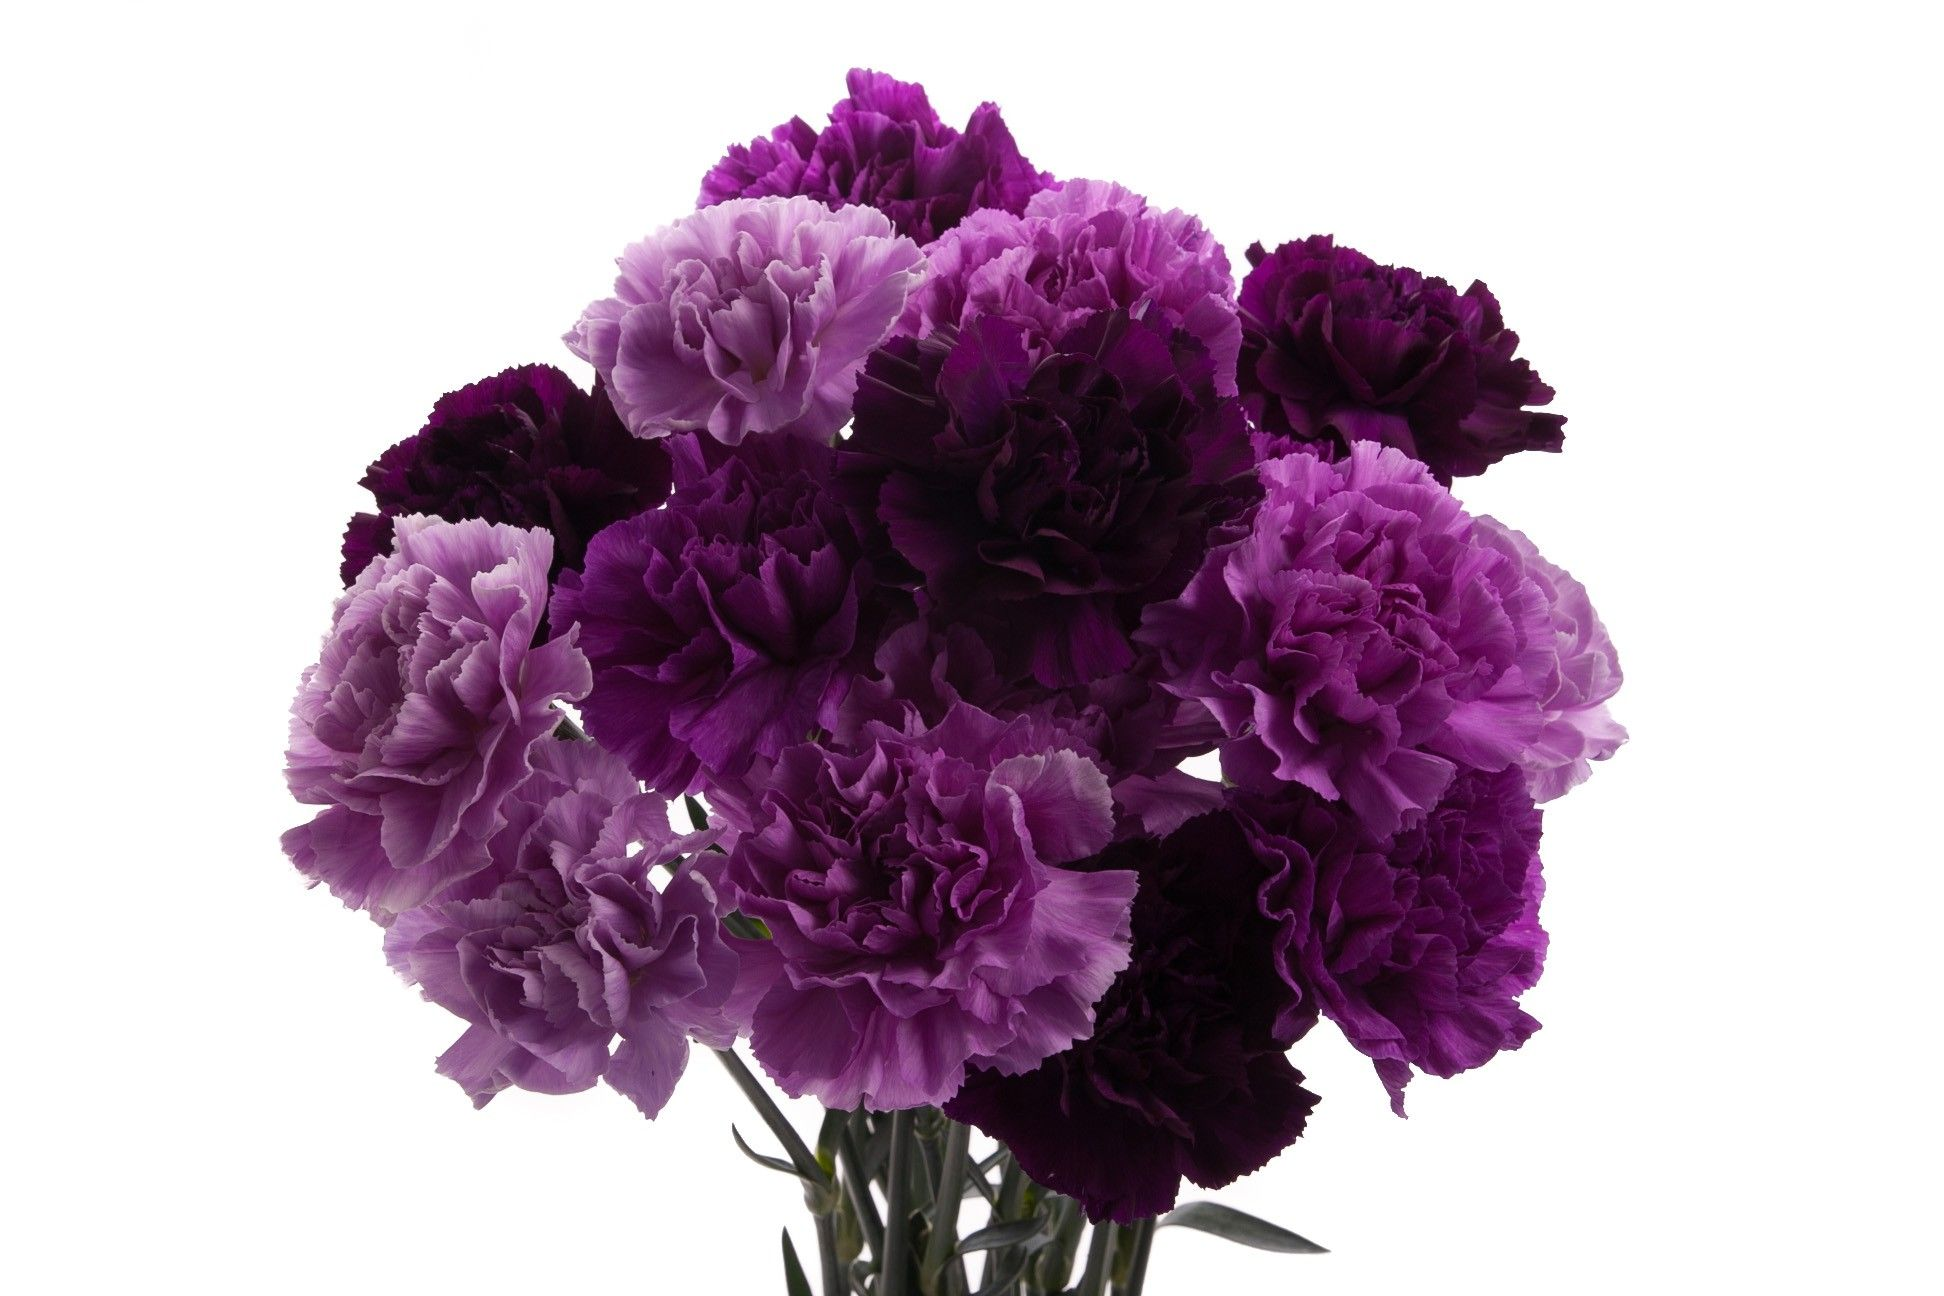 Purple Moon Carnations Name that flower! Types of